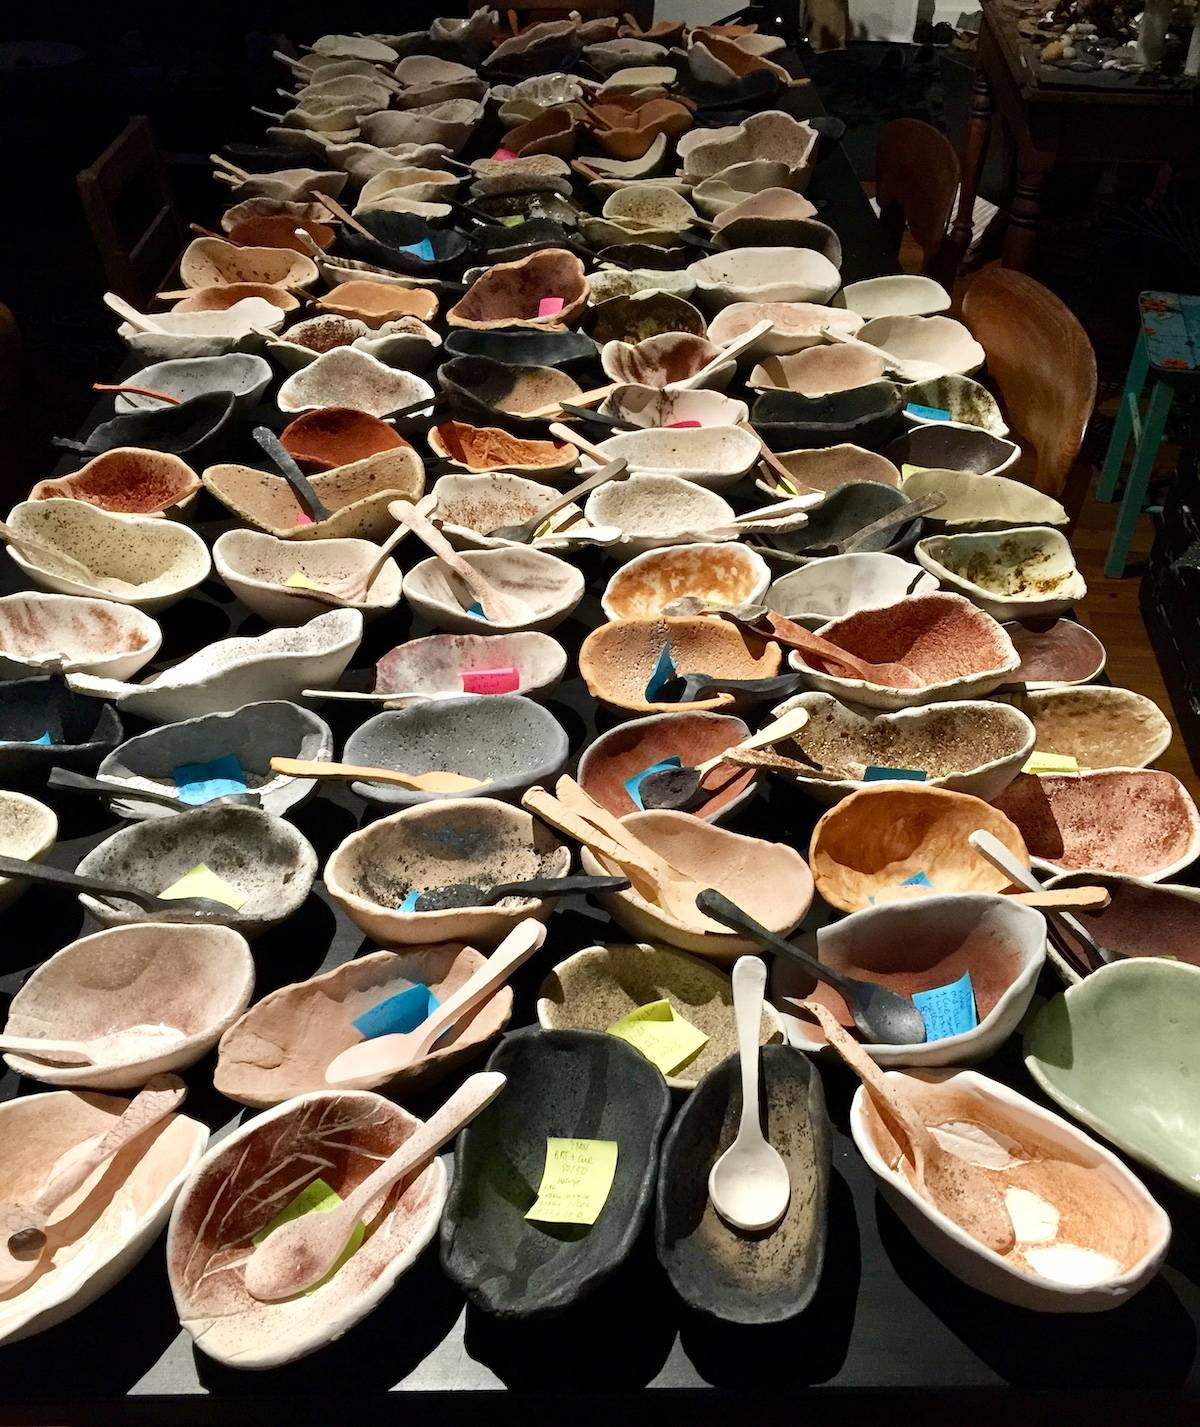 Various bowls with spoons and a note inside them all crammed onto one table